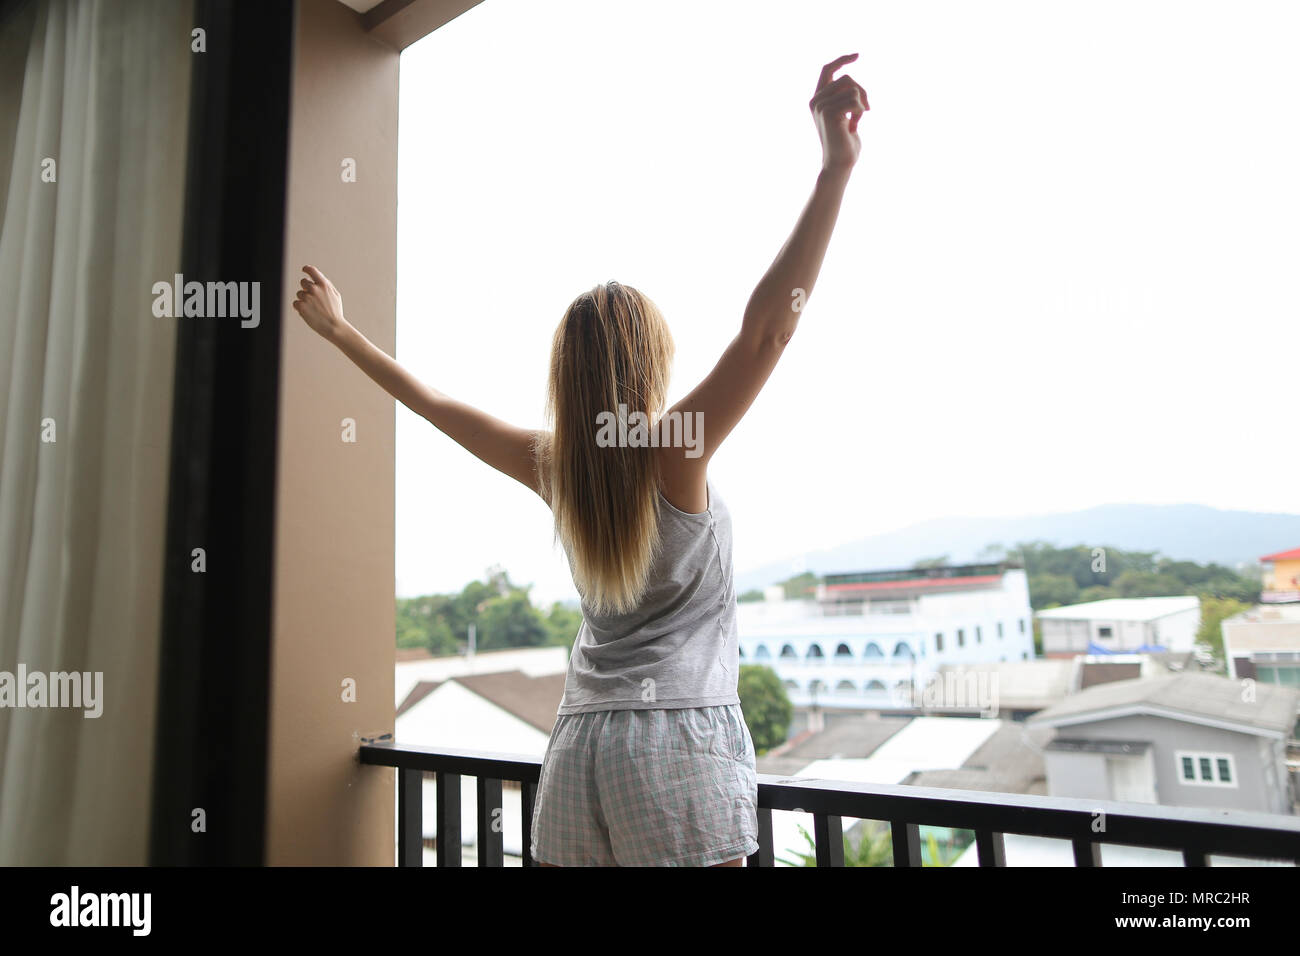 Young blonde woman wearing summer pajamas standing on balcony and looking at buildings with raised hands. - Stock Image